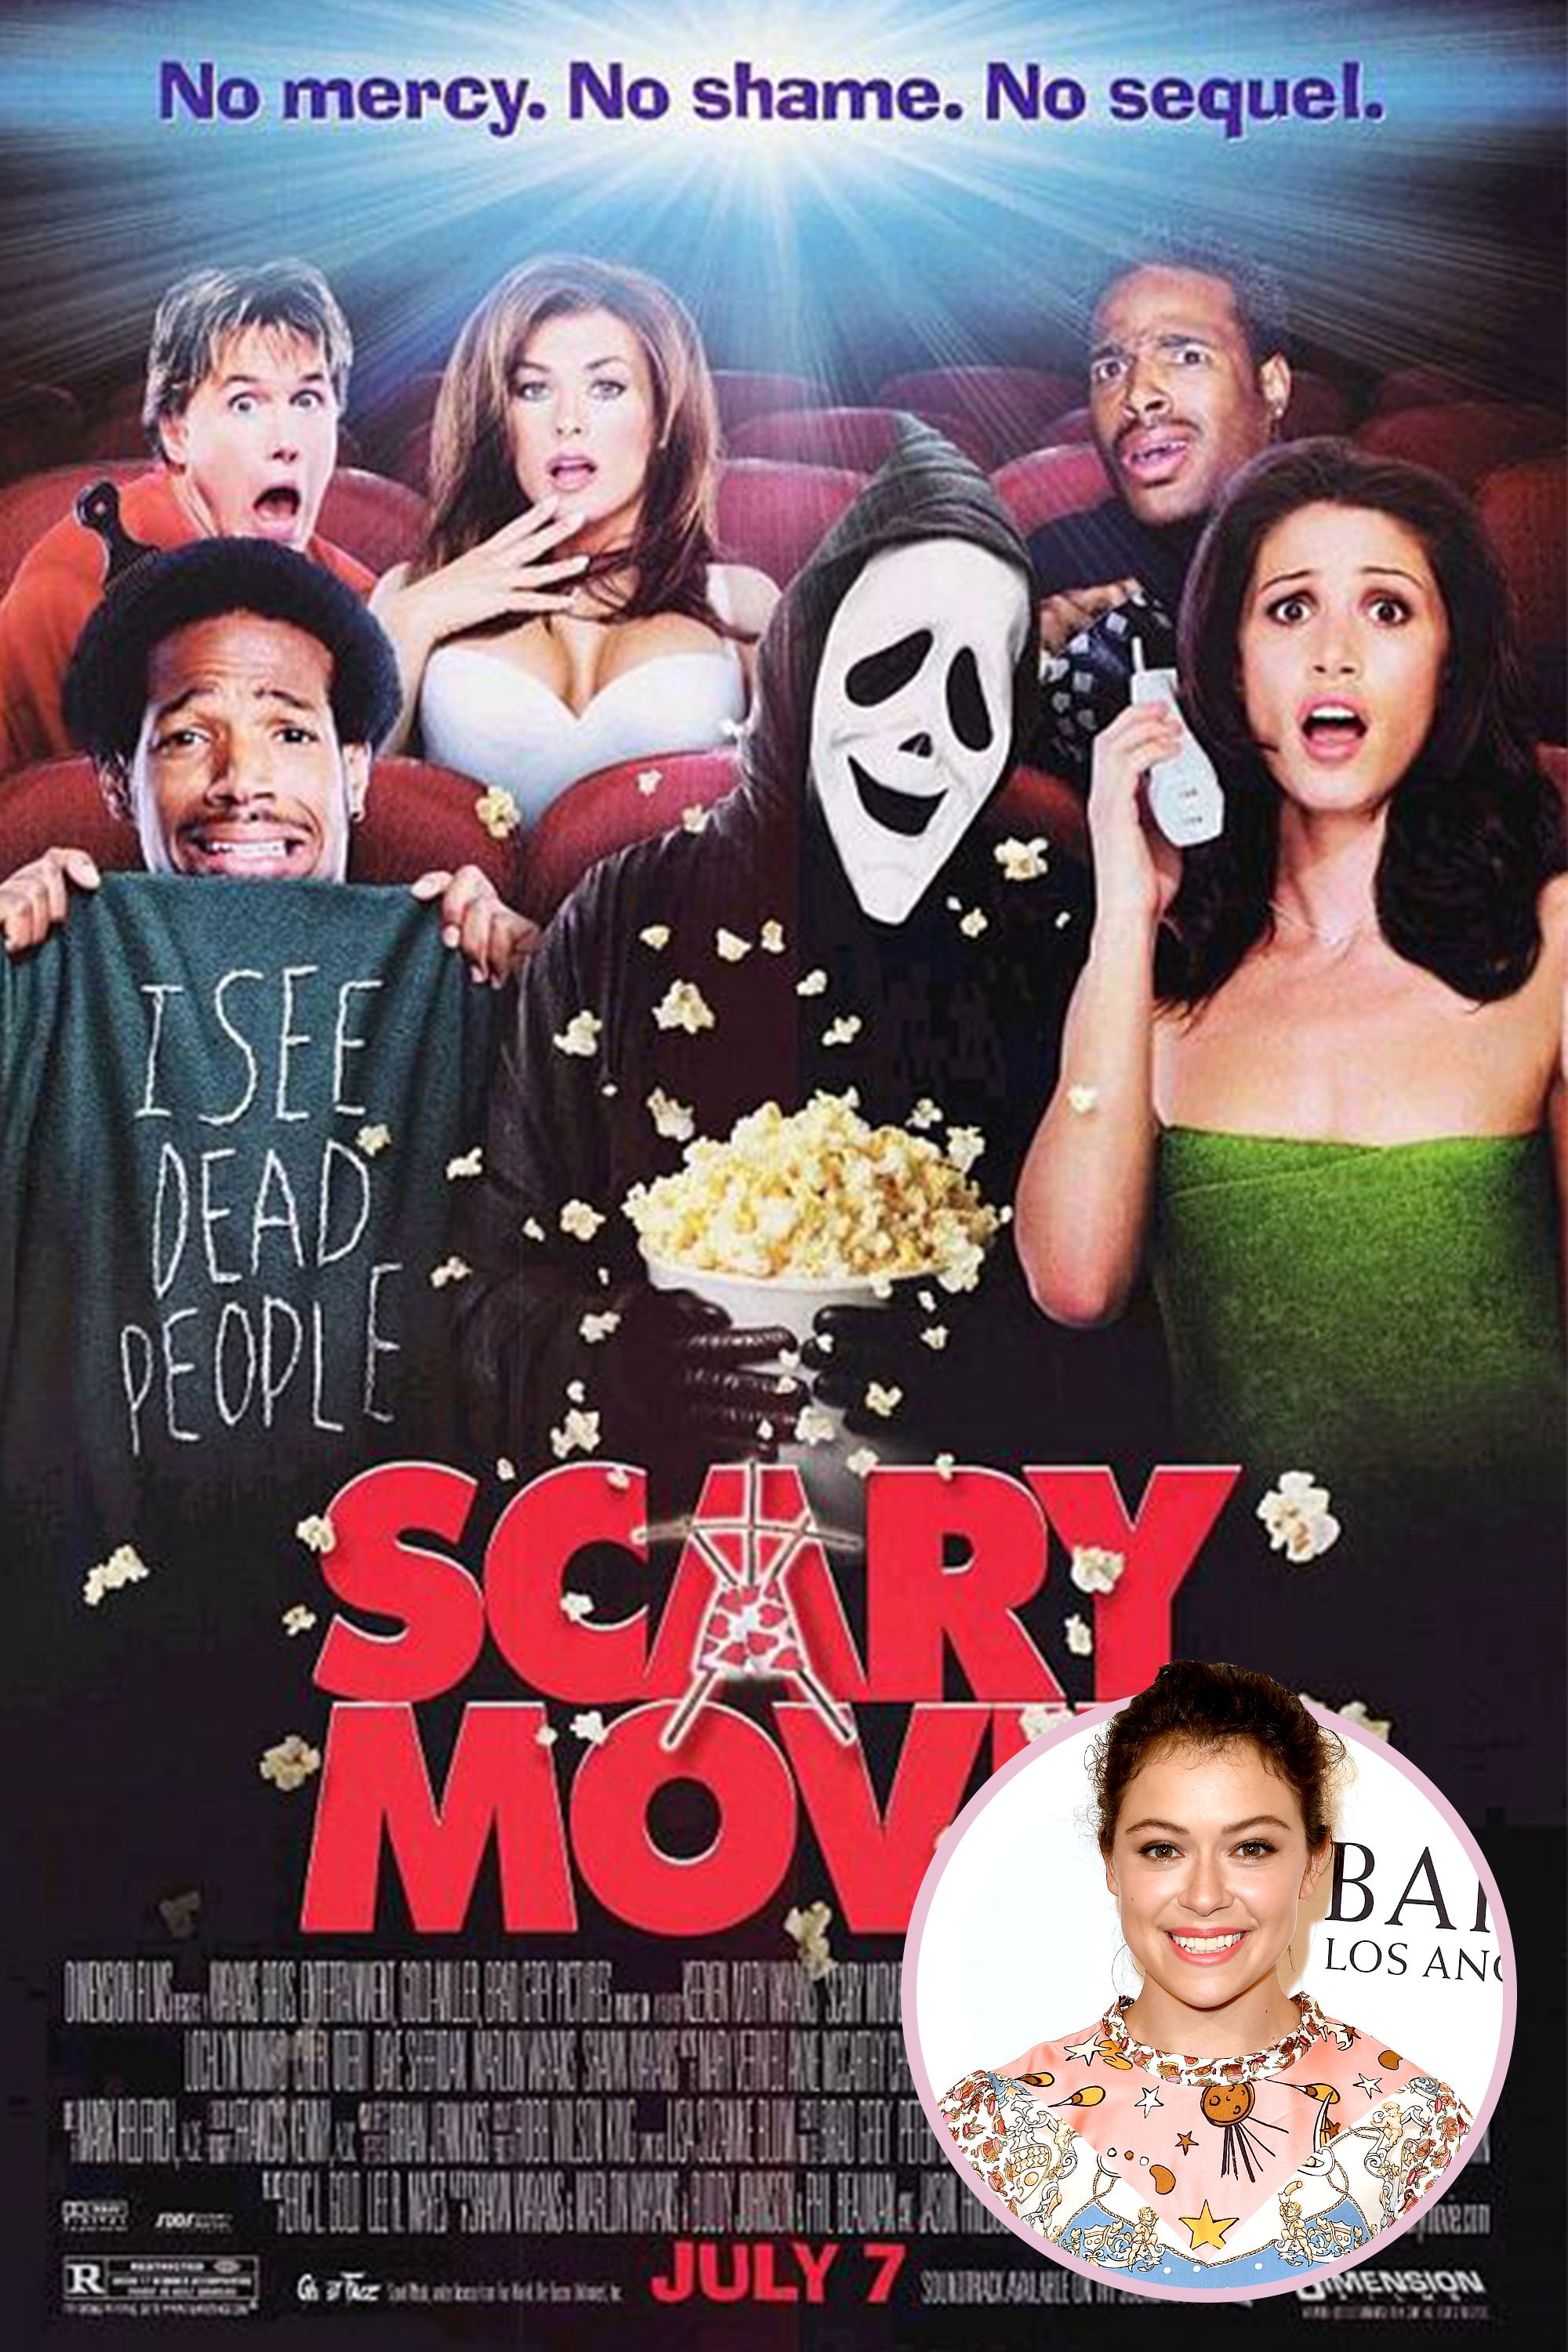 "<p>""It was <em data-redactor-tag=""em"" data-verified=""redactor"">Scary Movie</em> with Anna Faris. I think I saw it ten times. It scared me a little, but it's also funny.""<span id=""selection-marker-1"" class=""redactor-selection-marker"" data-verified=""redactor"" data-redactor-tag=""span"" data-redactor-class=""redactor-selection-marker""></span></p>"